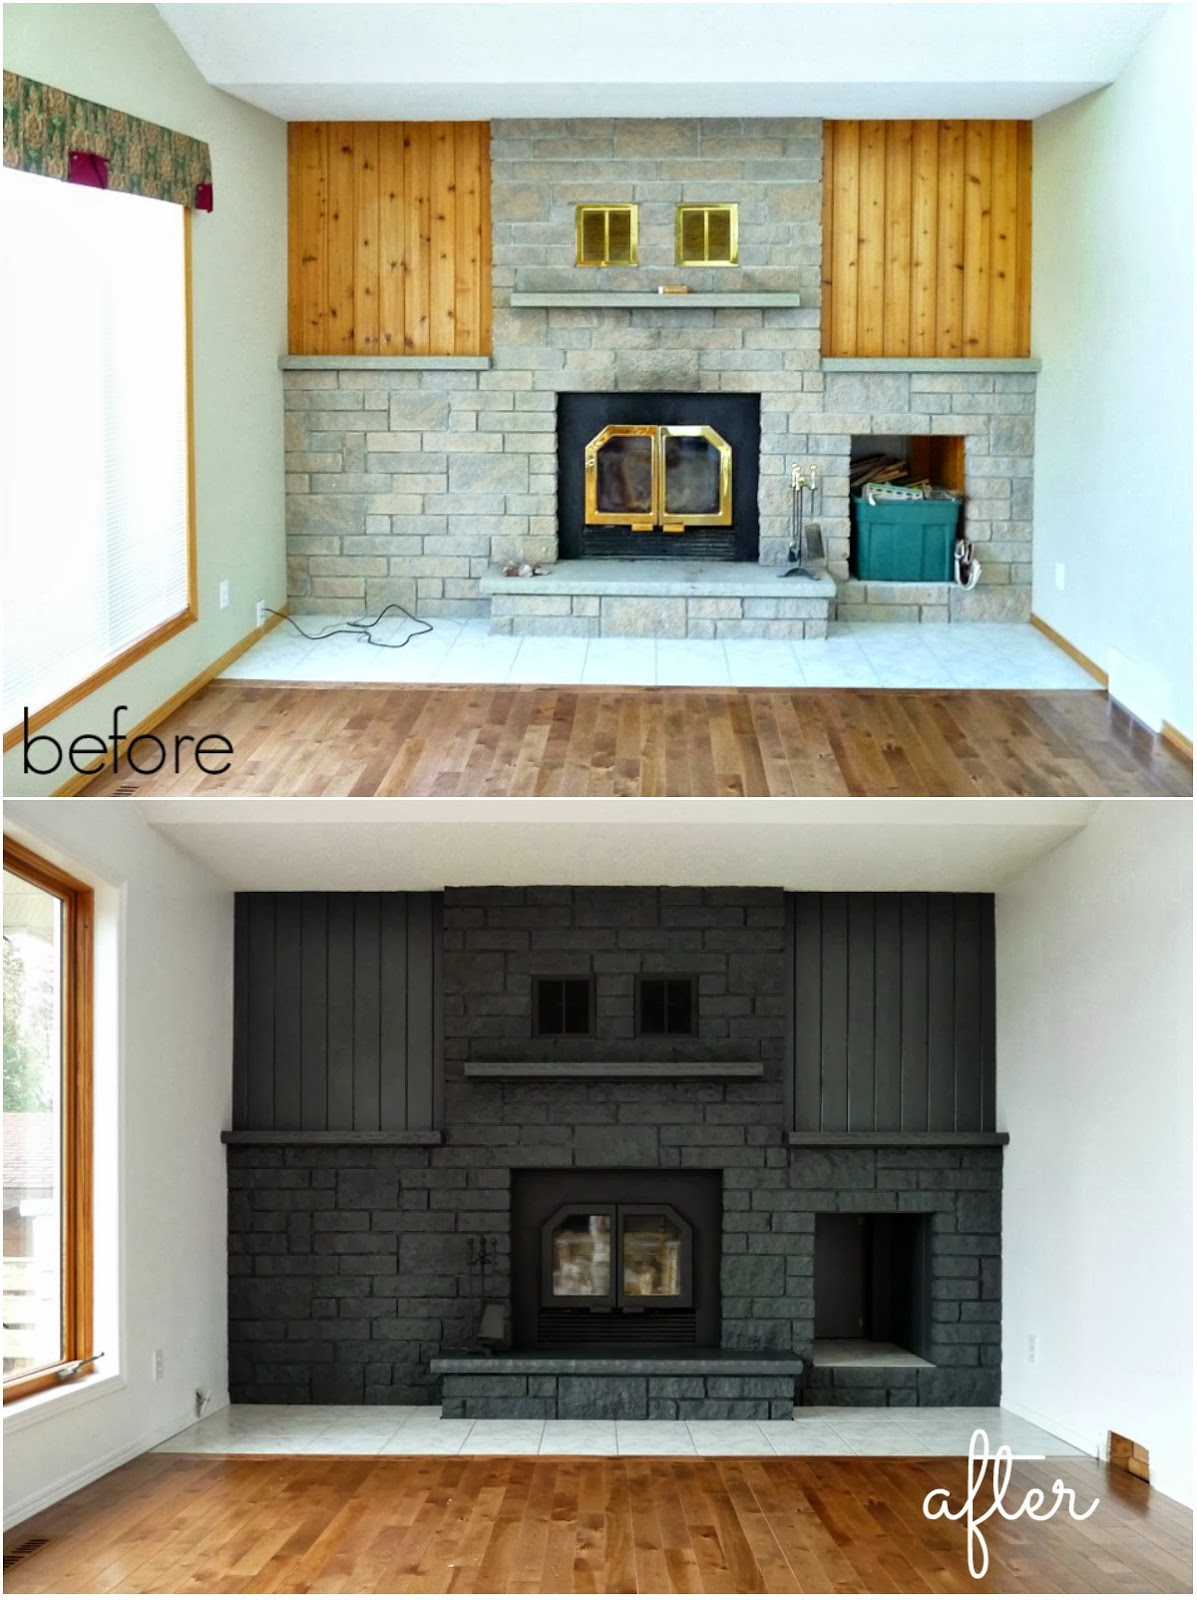 How to easily paint a stone fireplace charcoal grey fireplace budget friendly fireplace makeover by danslelakehouse how to paint a fireplace eventshaper